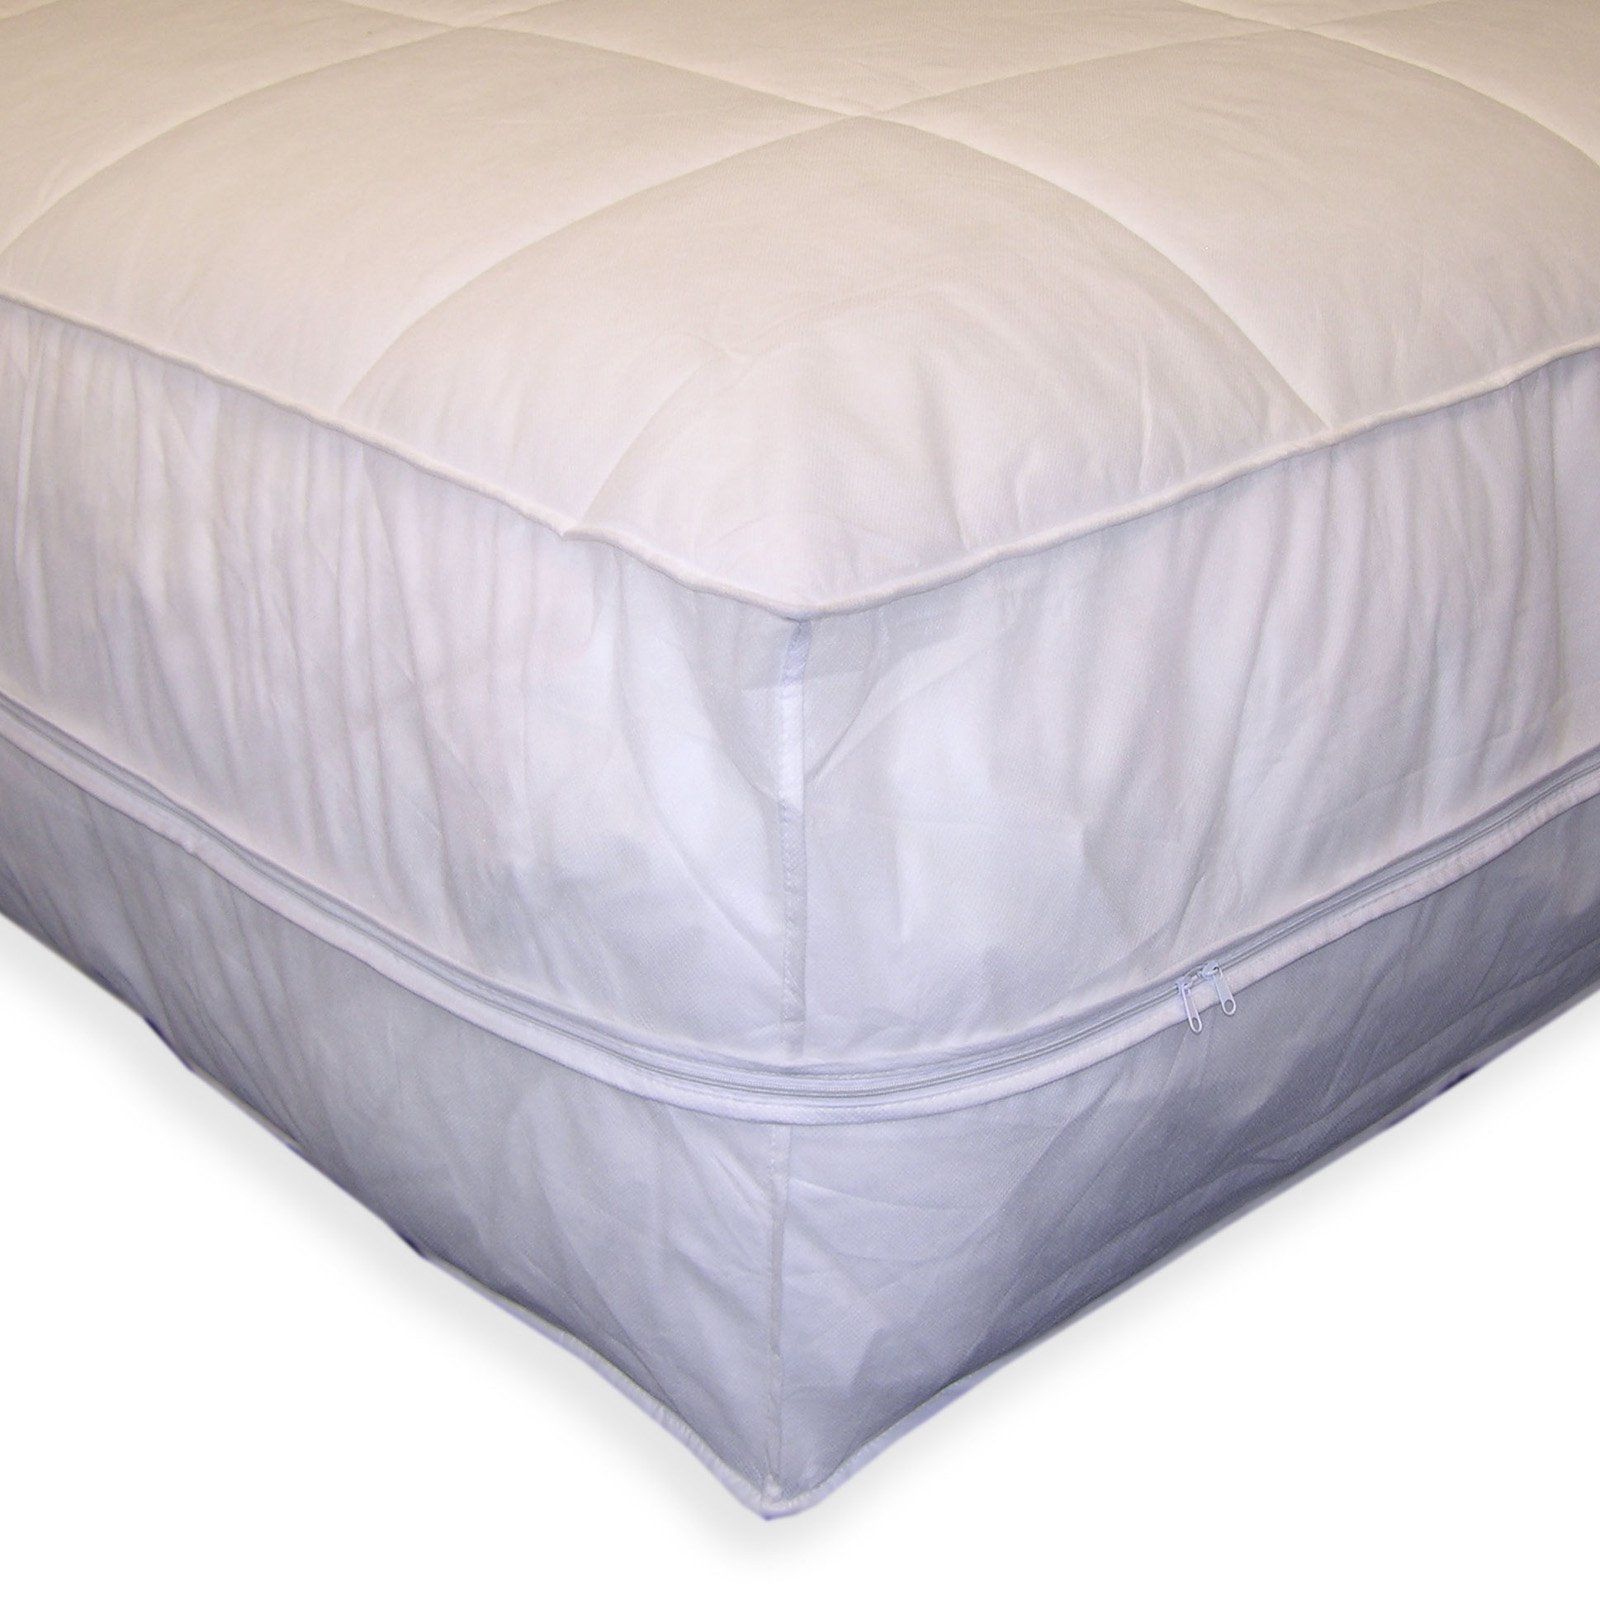 Permafresh Bed Bug and Dust Mite Control Water-Resistant Polypropylene All-In-1 Mattress Pad and Protector